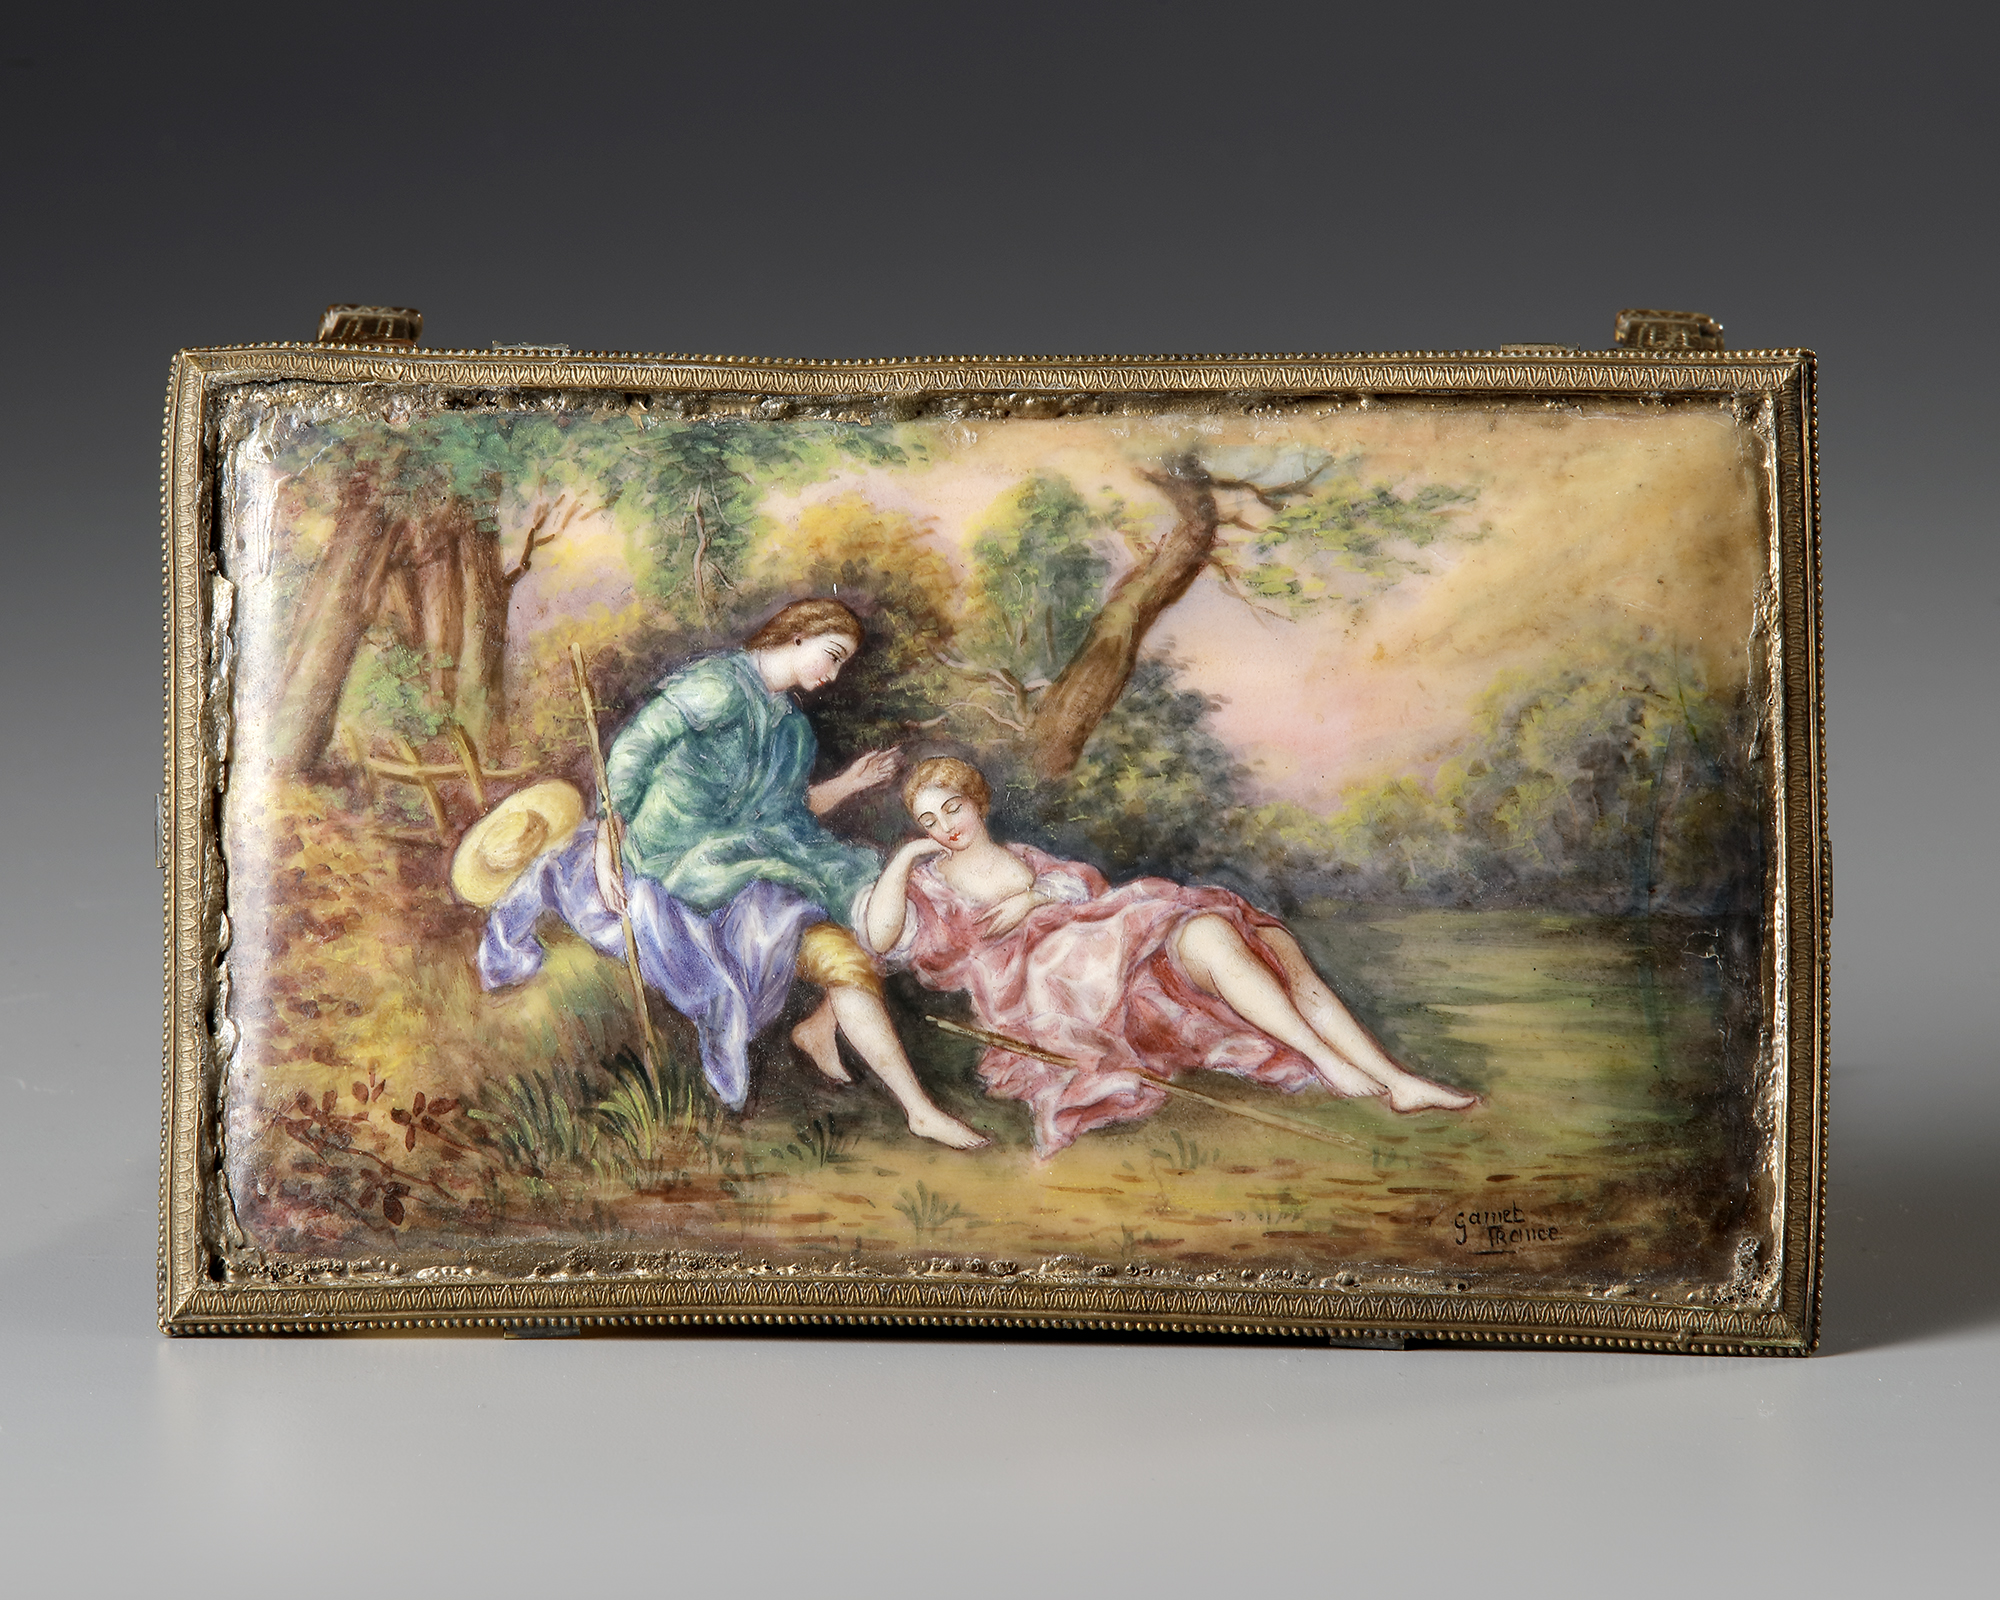 AN AUSTRIAN ENAMEL MINIATURE TABLE WITH PERFUME VIAL, LATE 19TH CENTURY - Image 3 of 5